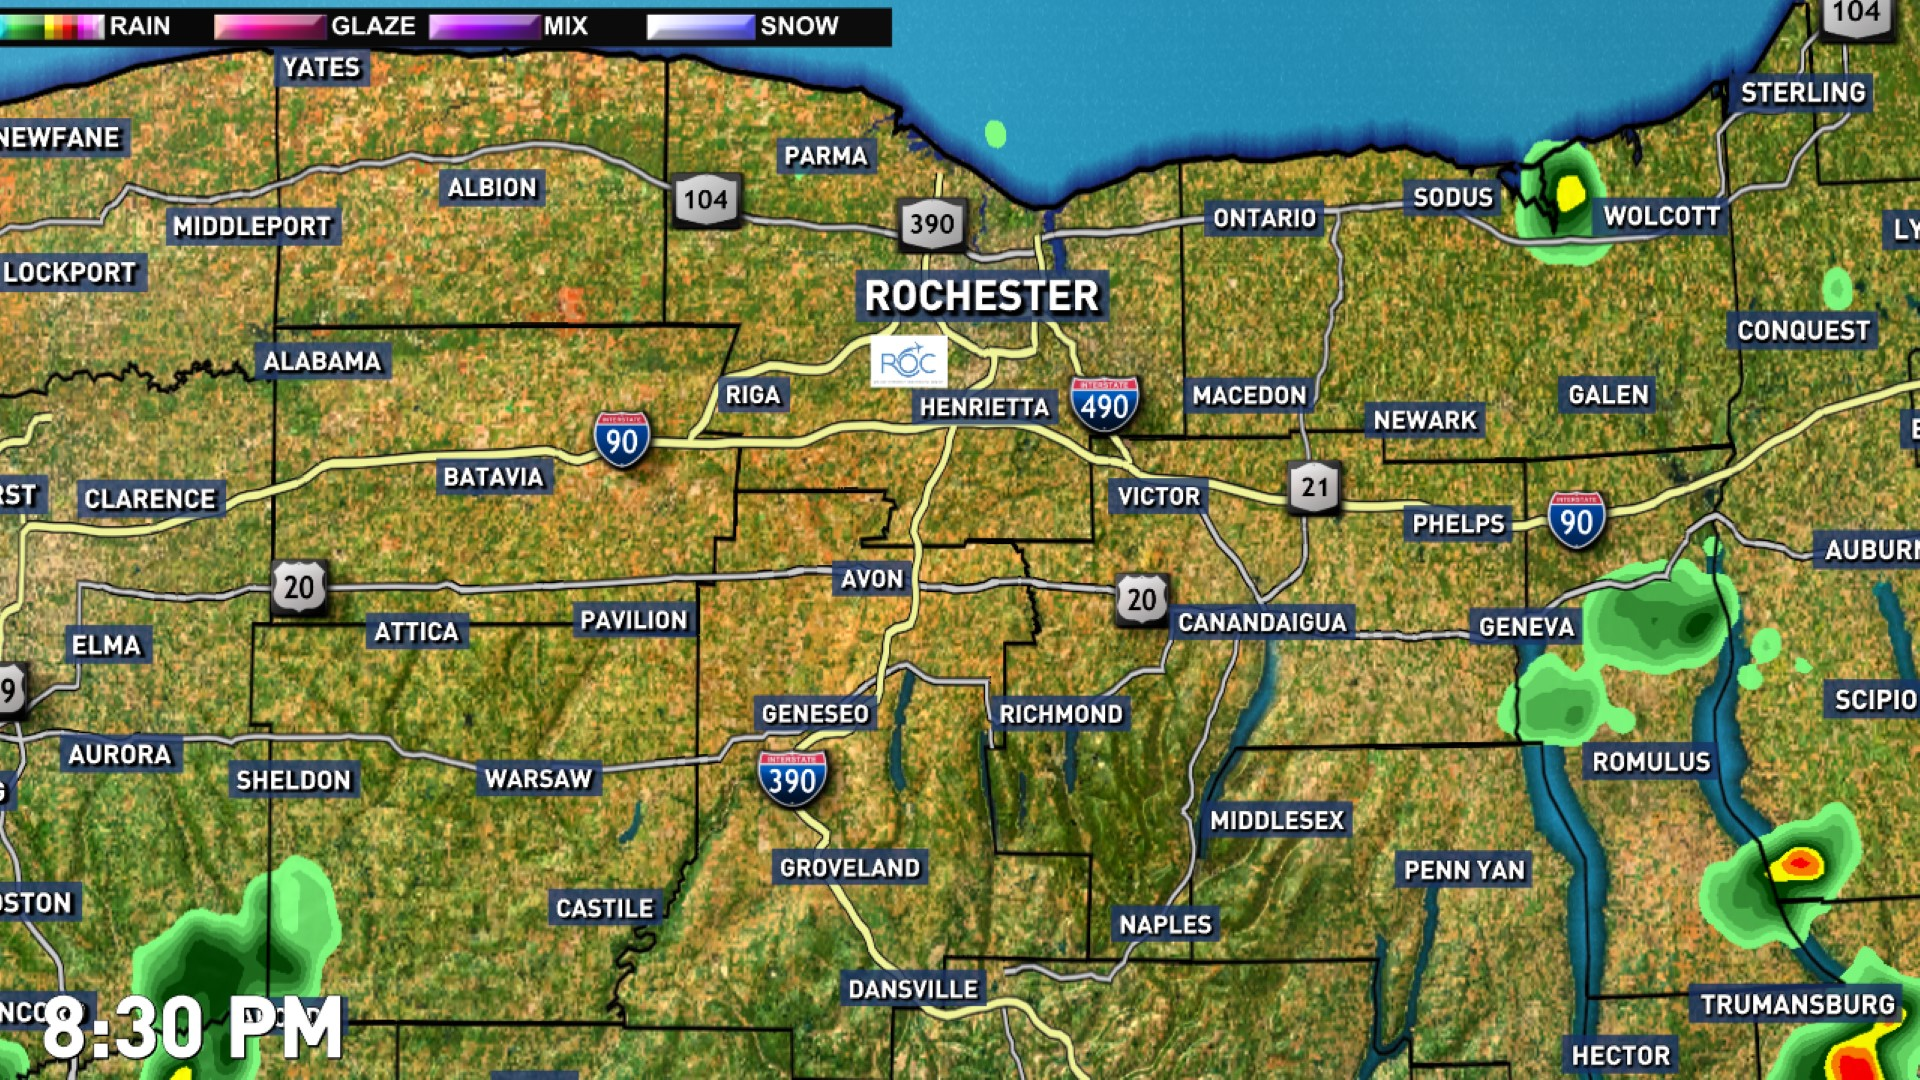 US Weather Doppler Radar Map Video March Th To March Th - Us weather radar map in motion